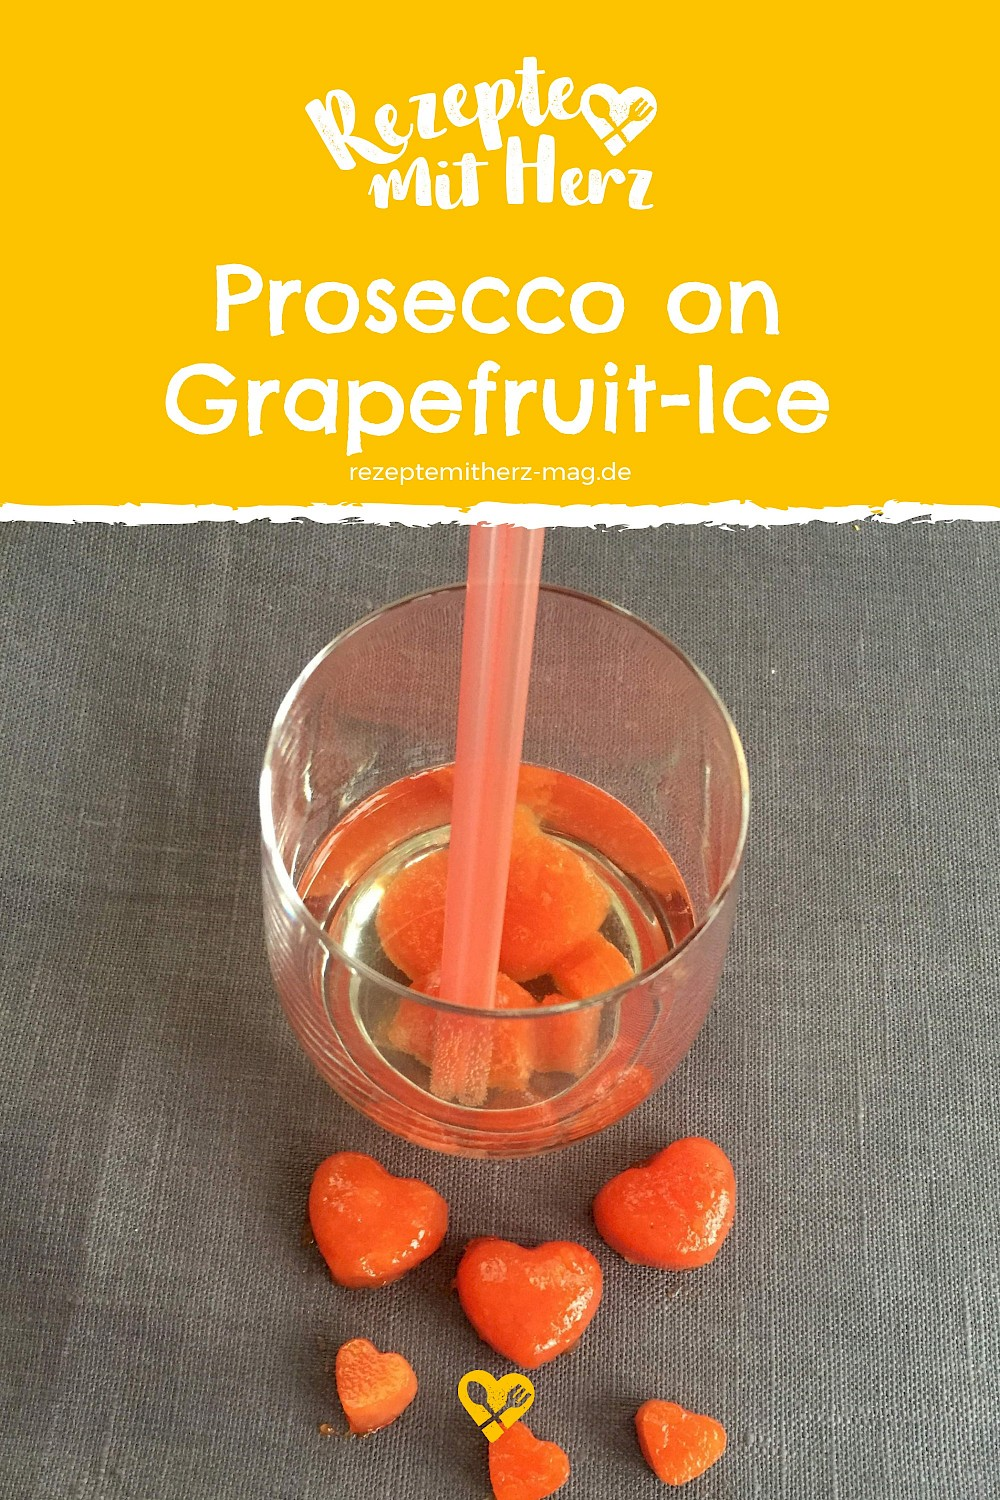 Prosecco on (Grapefruit) Ice